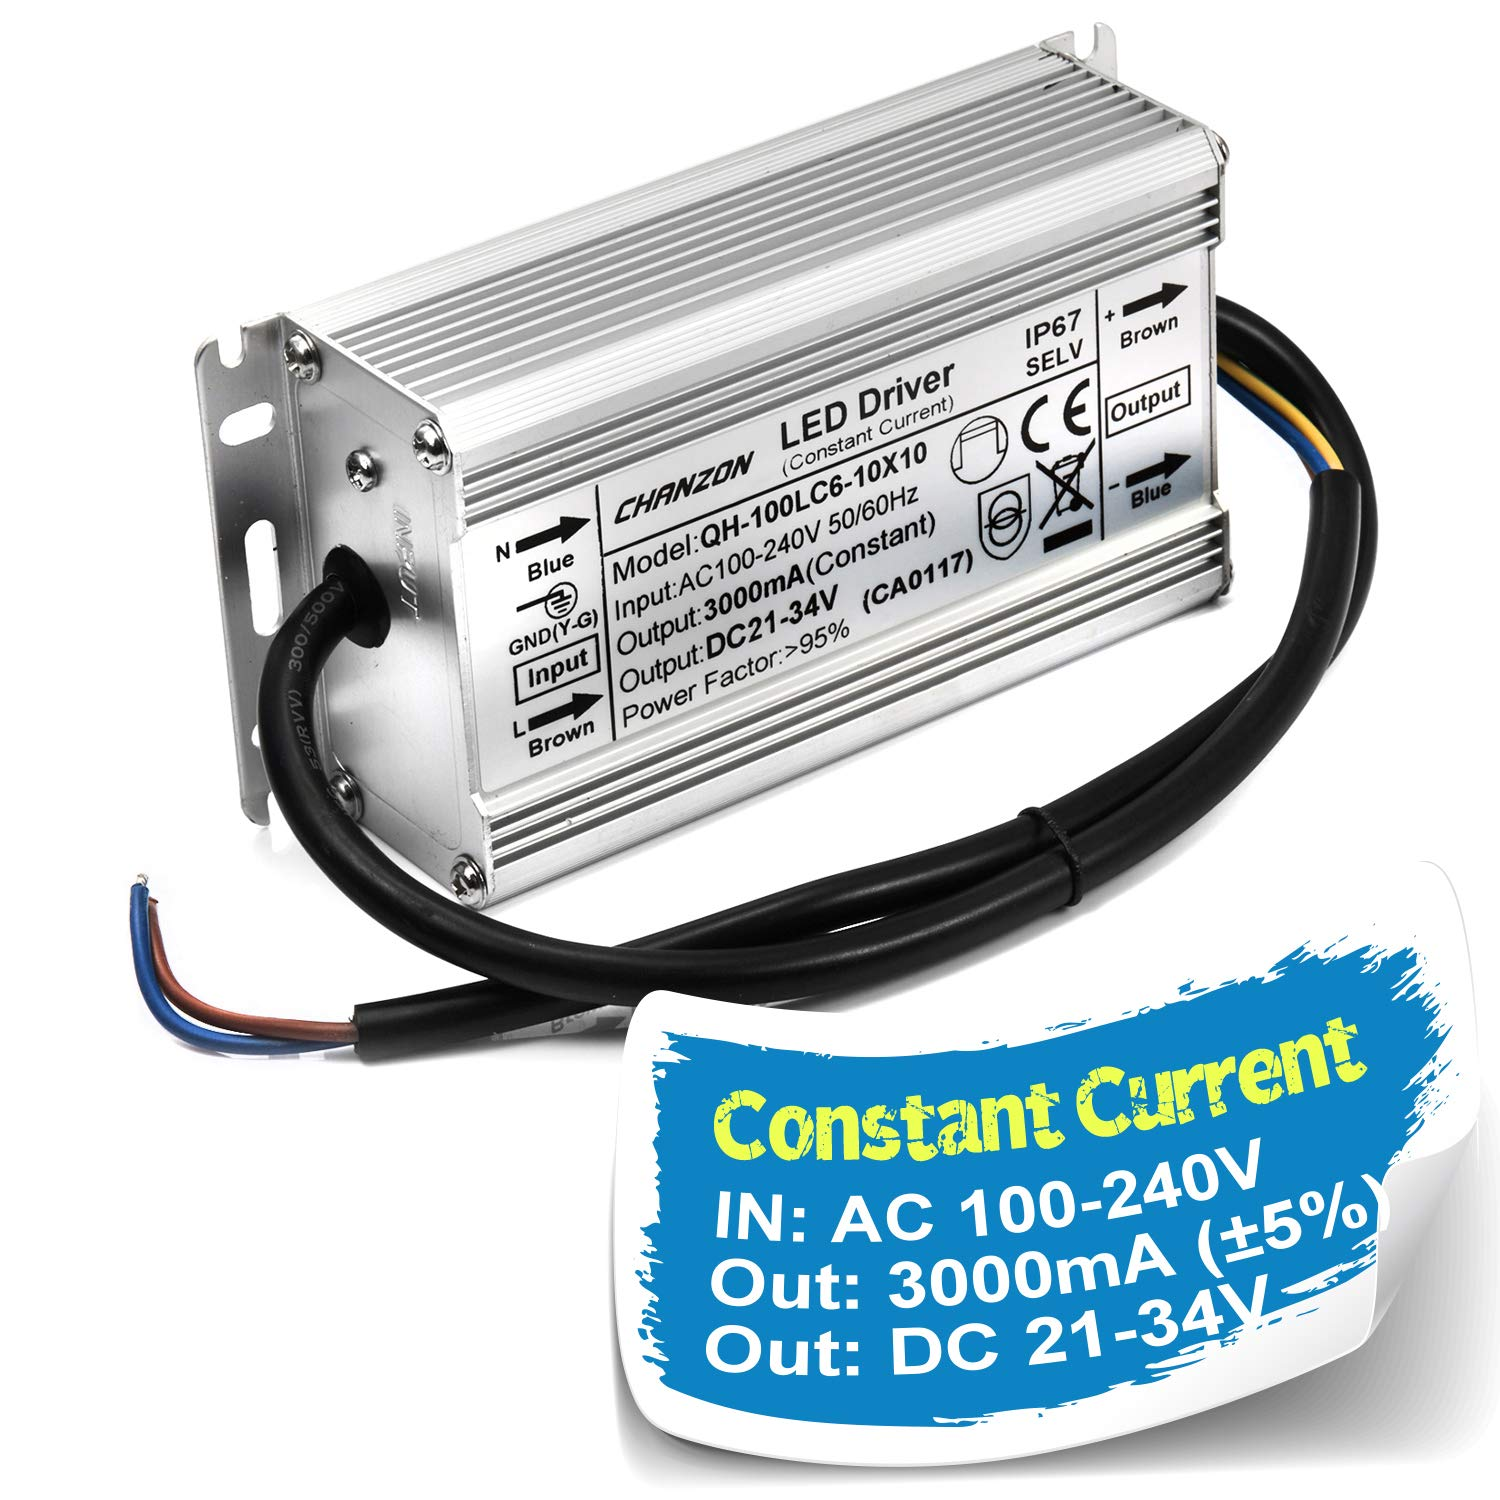 Chanzon LED Driver 3000mA (Constant Current Output) 21V-34V (In 110V-240V AC-DC) 100W IP67 Waterproof High Power Supply 3000 mA Lighting Transformer for 100 W COB Chips (Aluminium)